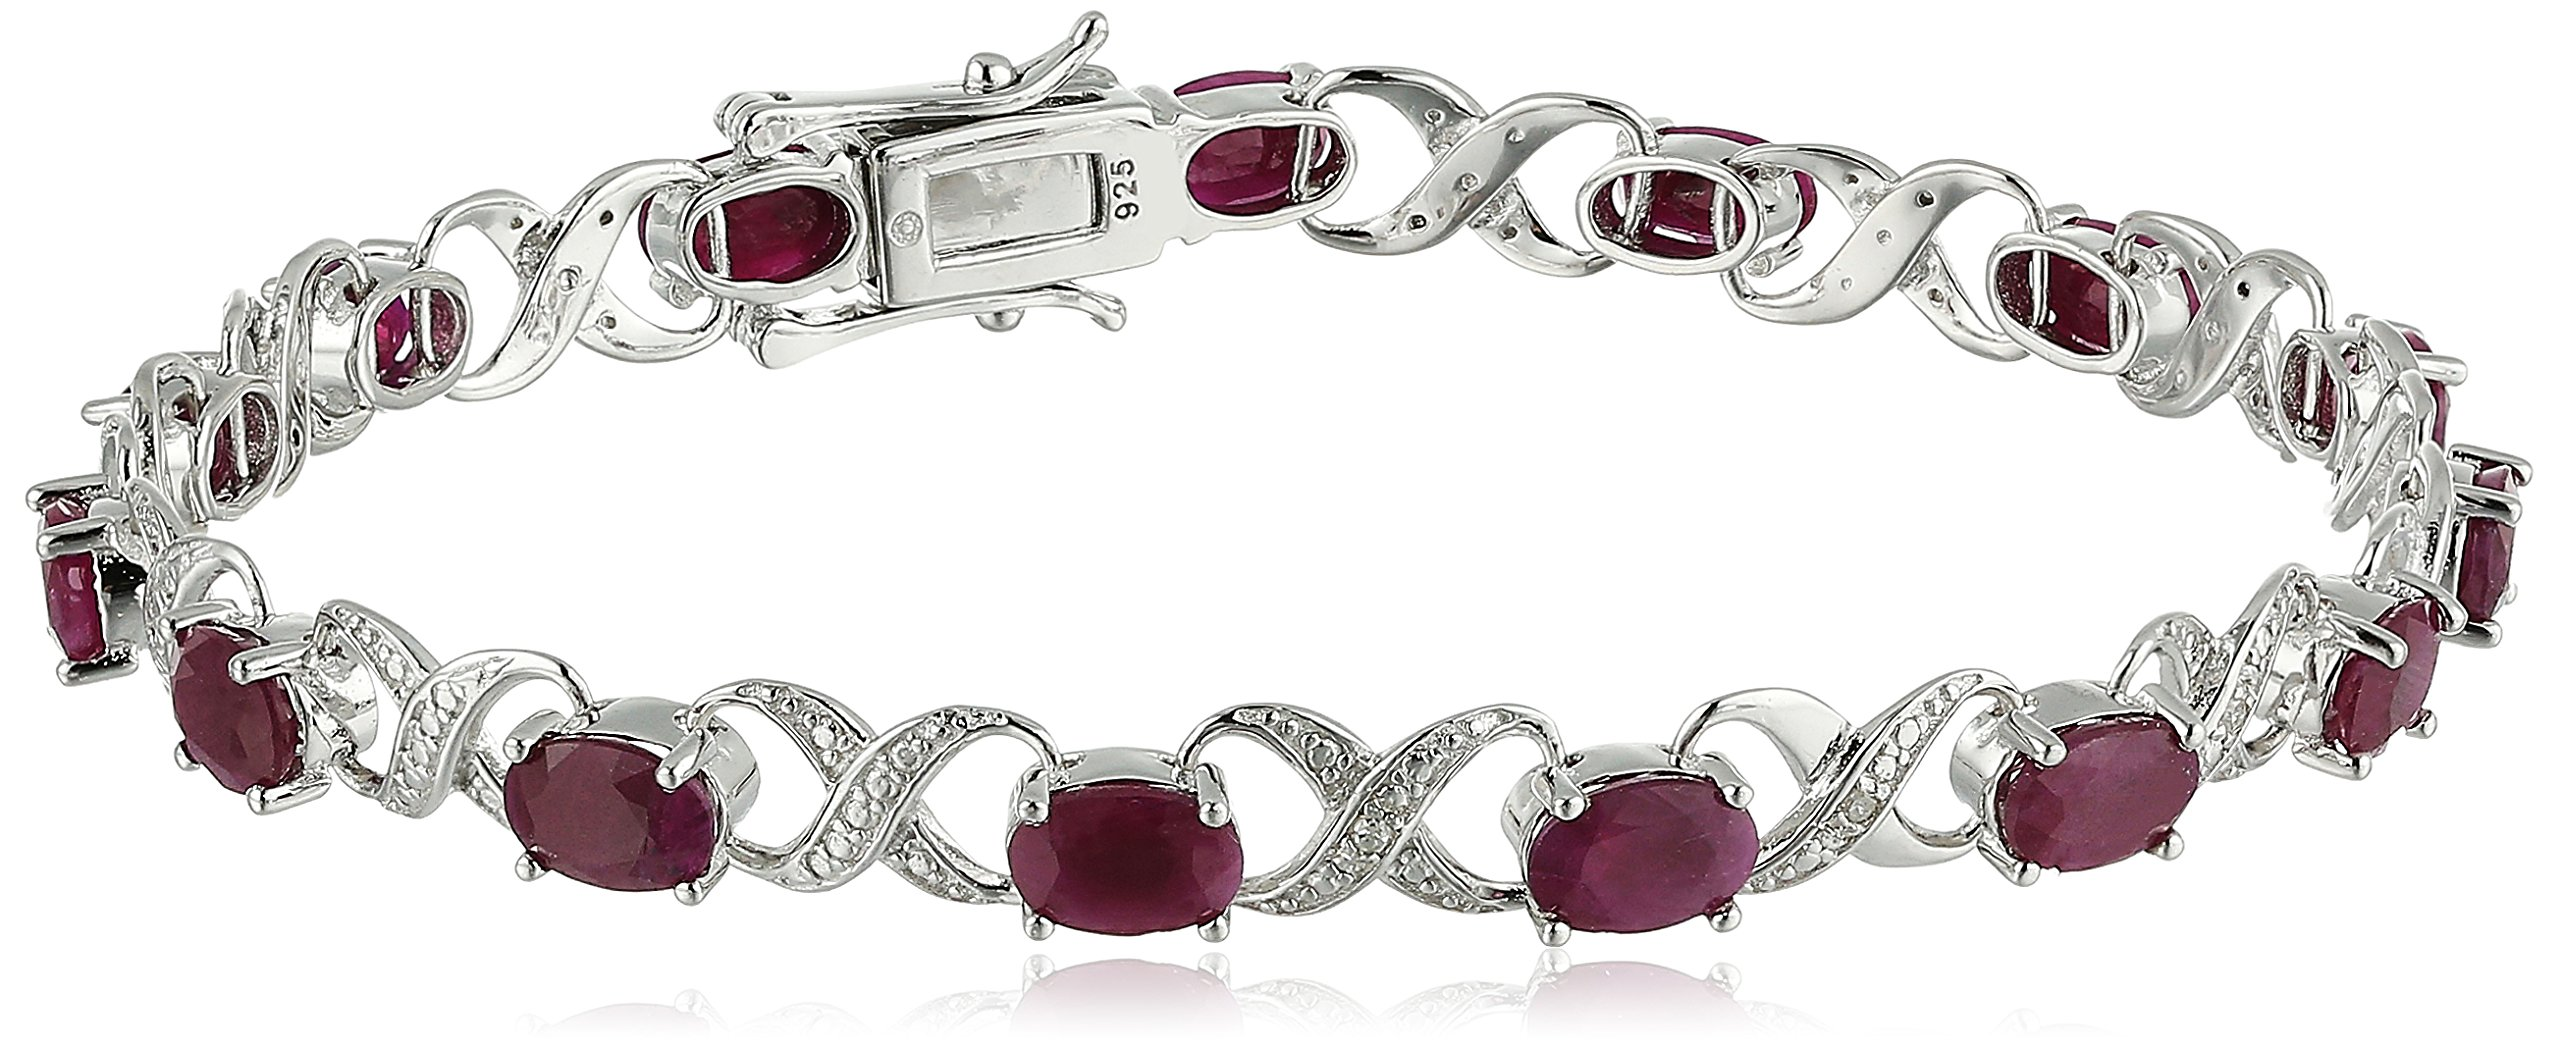 Sterling Silver 8 cttw Ruby and Diamond Accented XO XO Tennis Bracelet, 7.25''